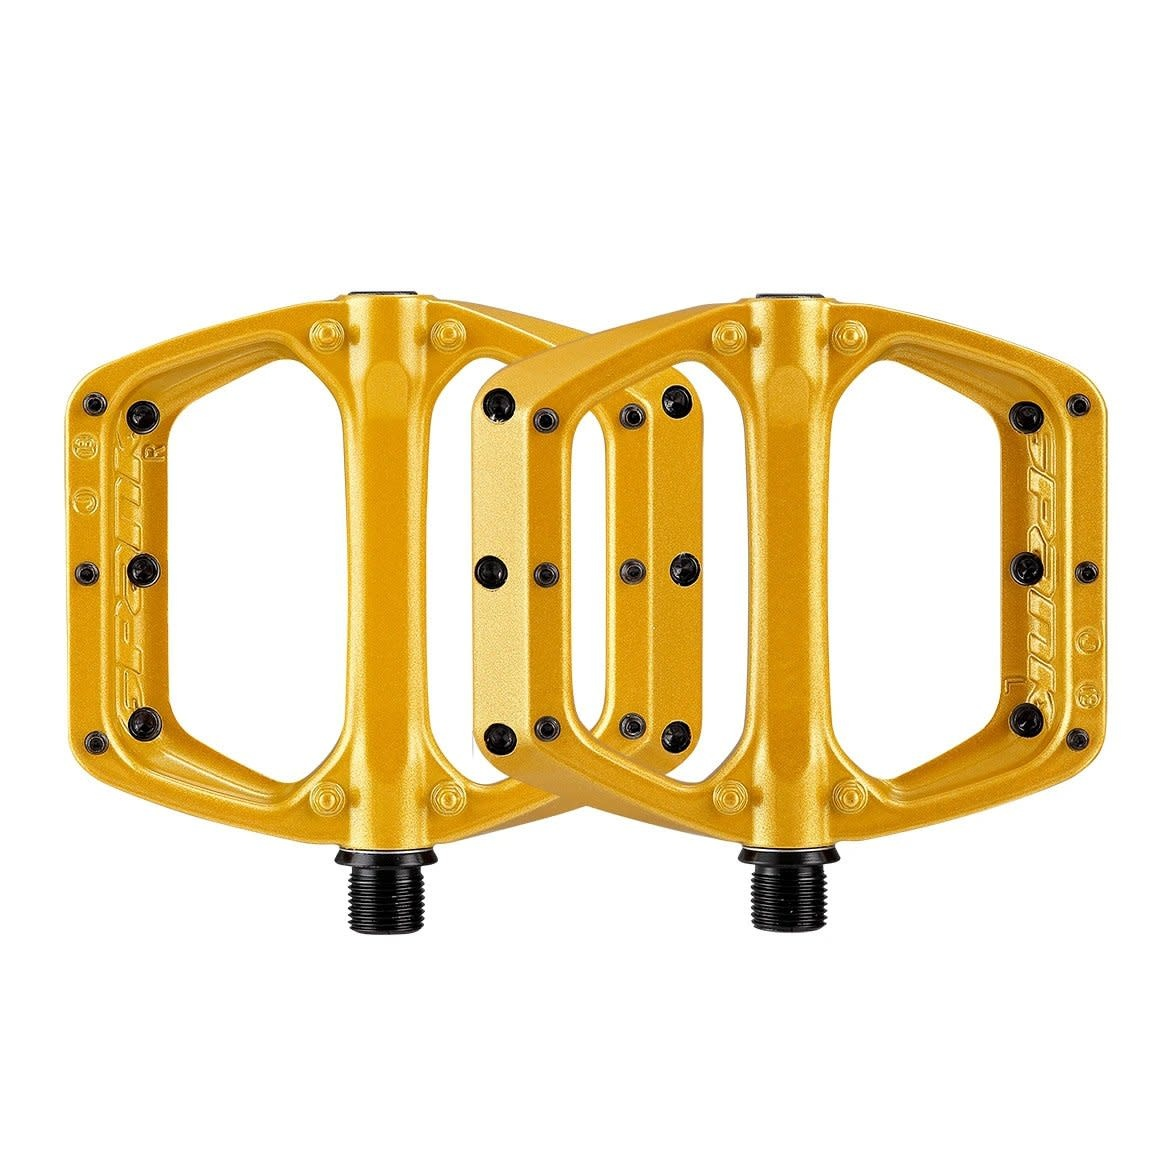 Spank Spank, SPOON DC, Platform Pedals, Body: Aluminum, Spindle: Cr-Mo, 9/16'', Gold, Pair